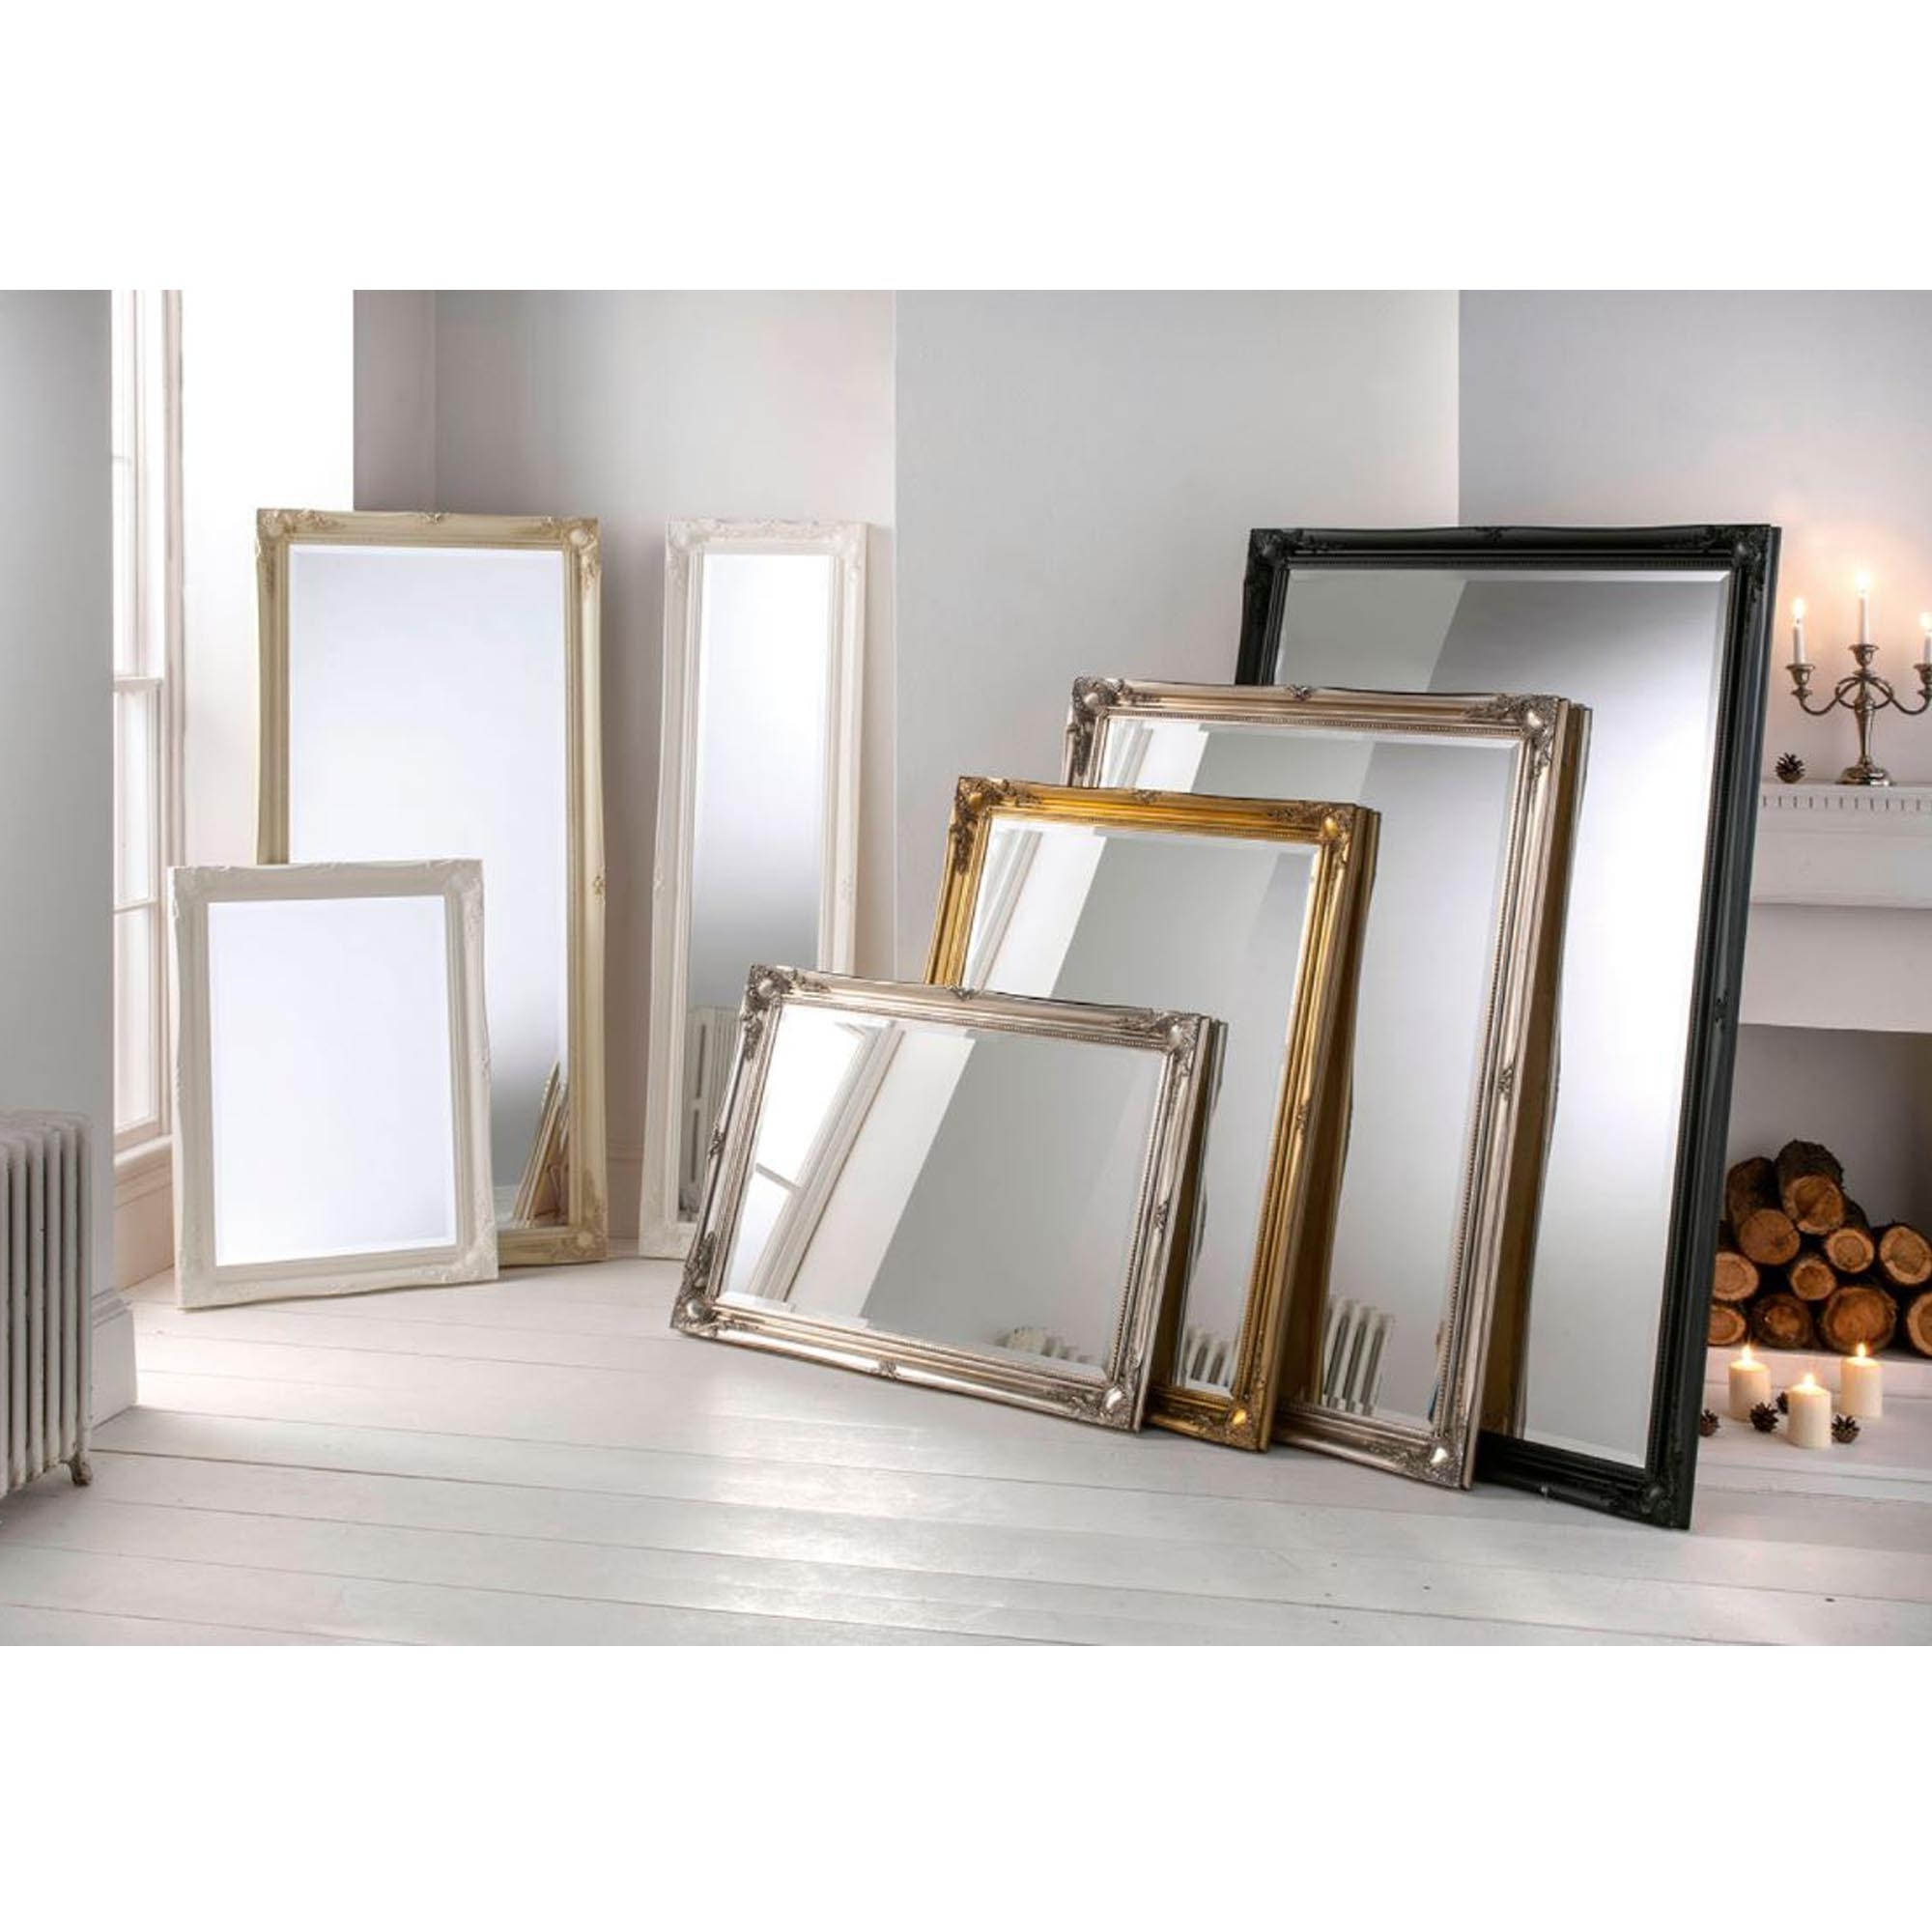 Preferred Decorative Black Wall Mirrors Throughout Decorative Ornate Antique French Style Black Wall Mirror (View 9 of 20)